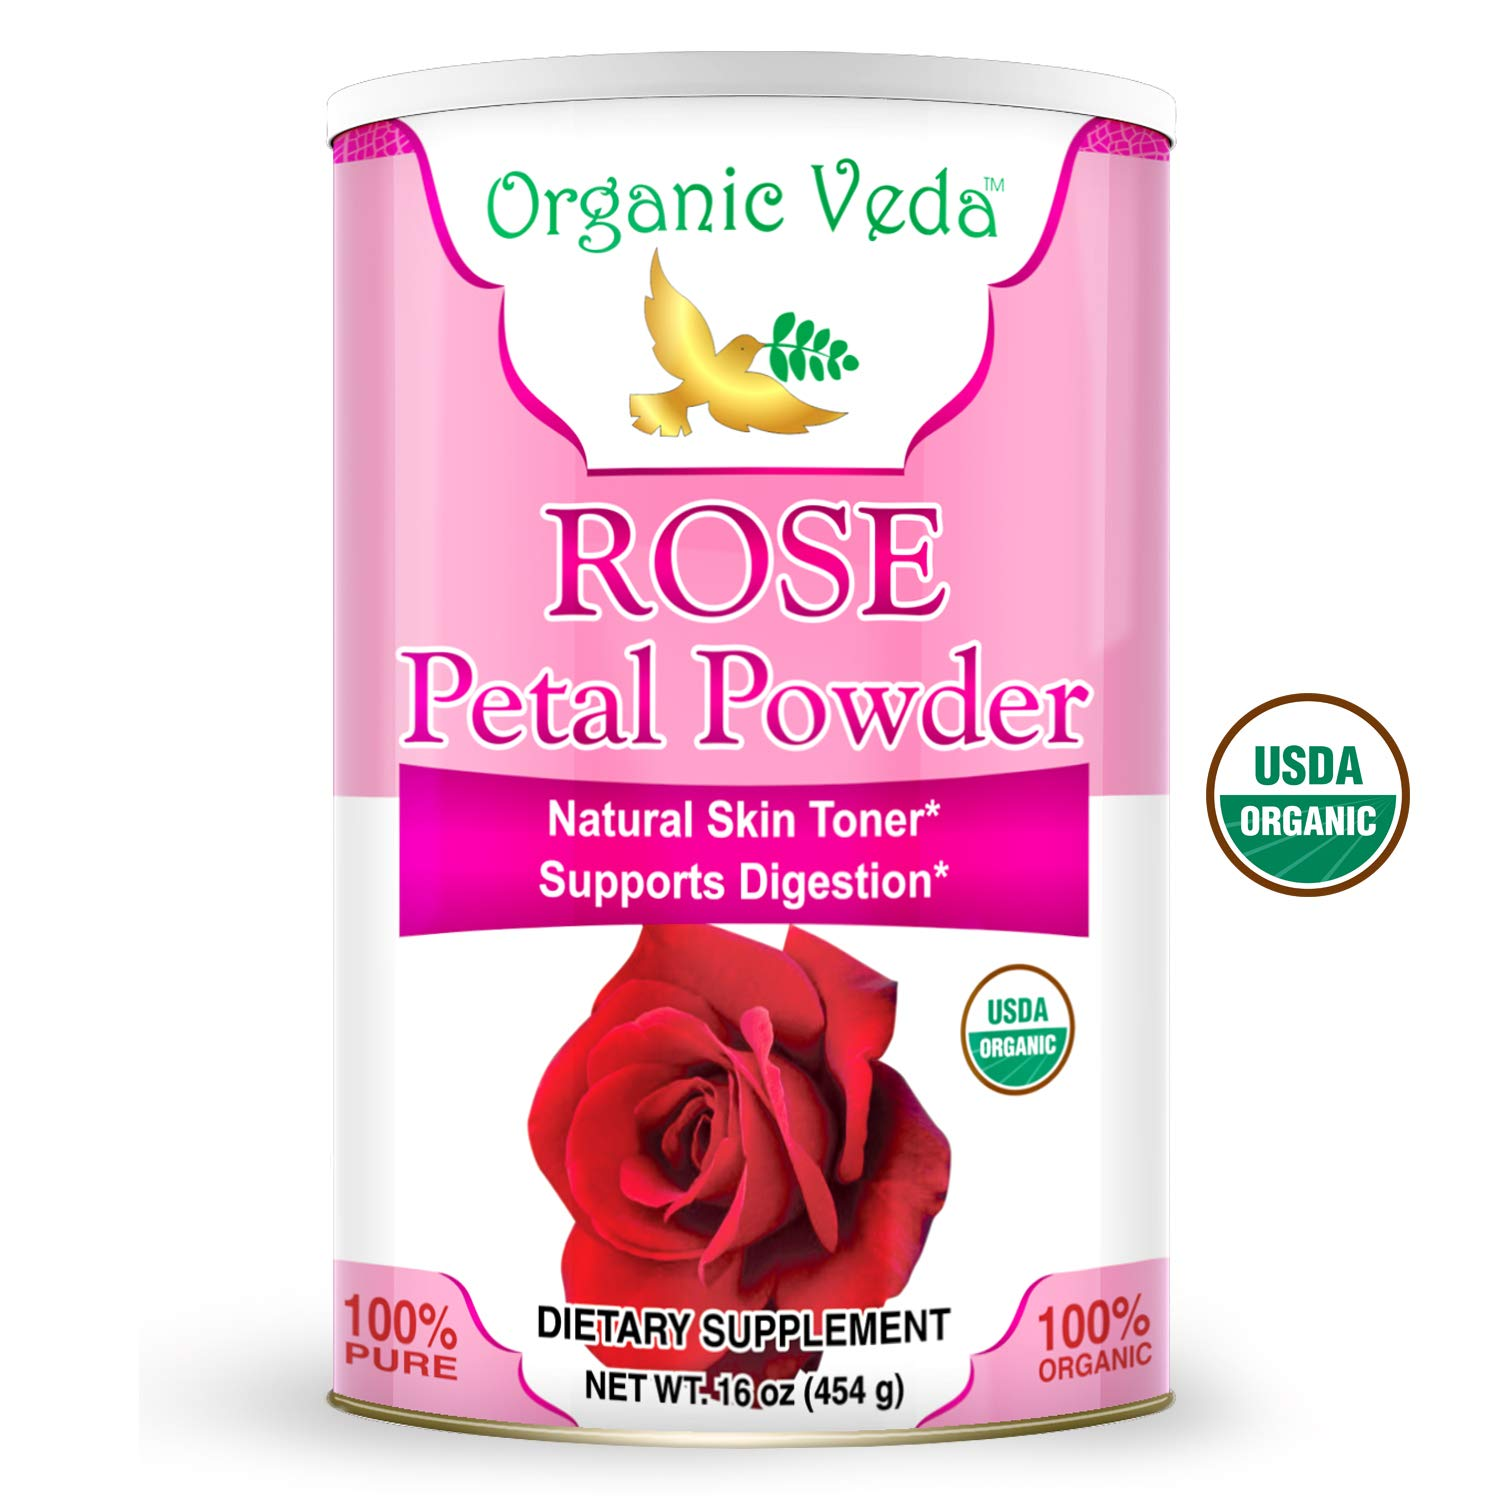 Organic Rose Petal Powder 16 Ounce - 1 Lb. ★ USDA Certified Organic ★ 100% Pure and Natural Herbs Raw Organic Super Food Supplement. Non GMO. Gluten Free. US FDA Registered Facility. All Natural!